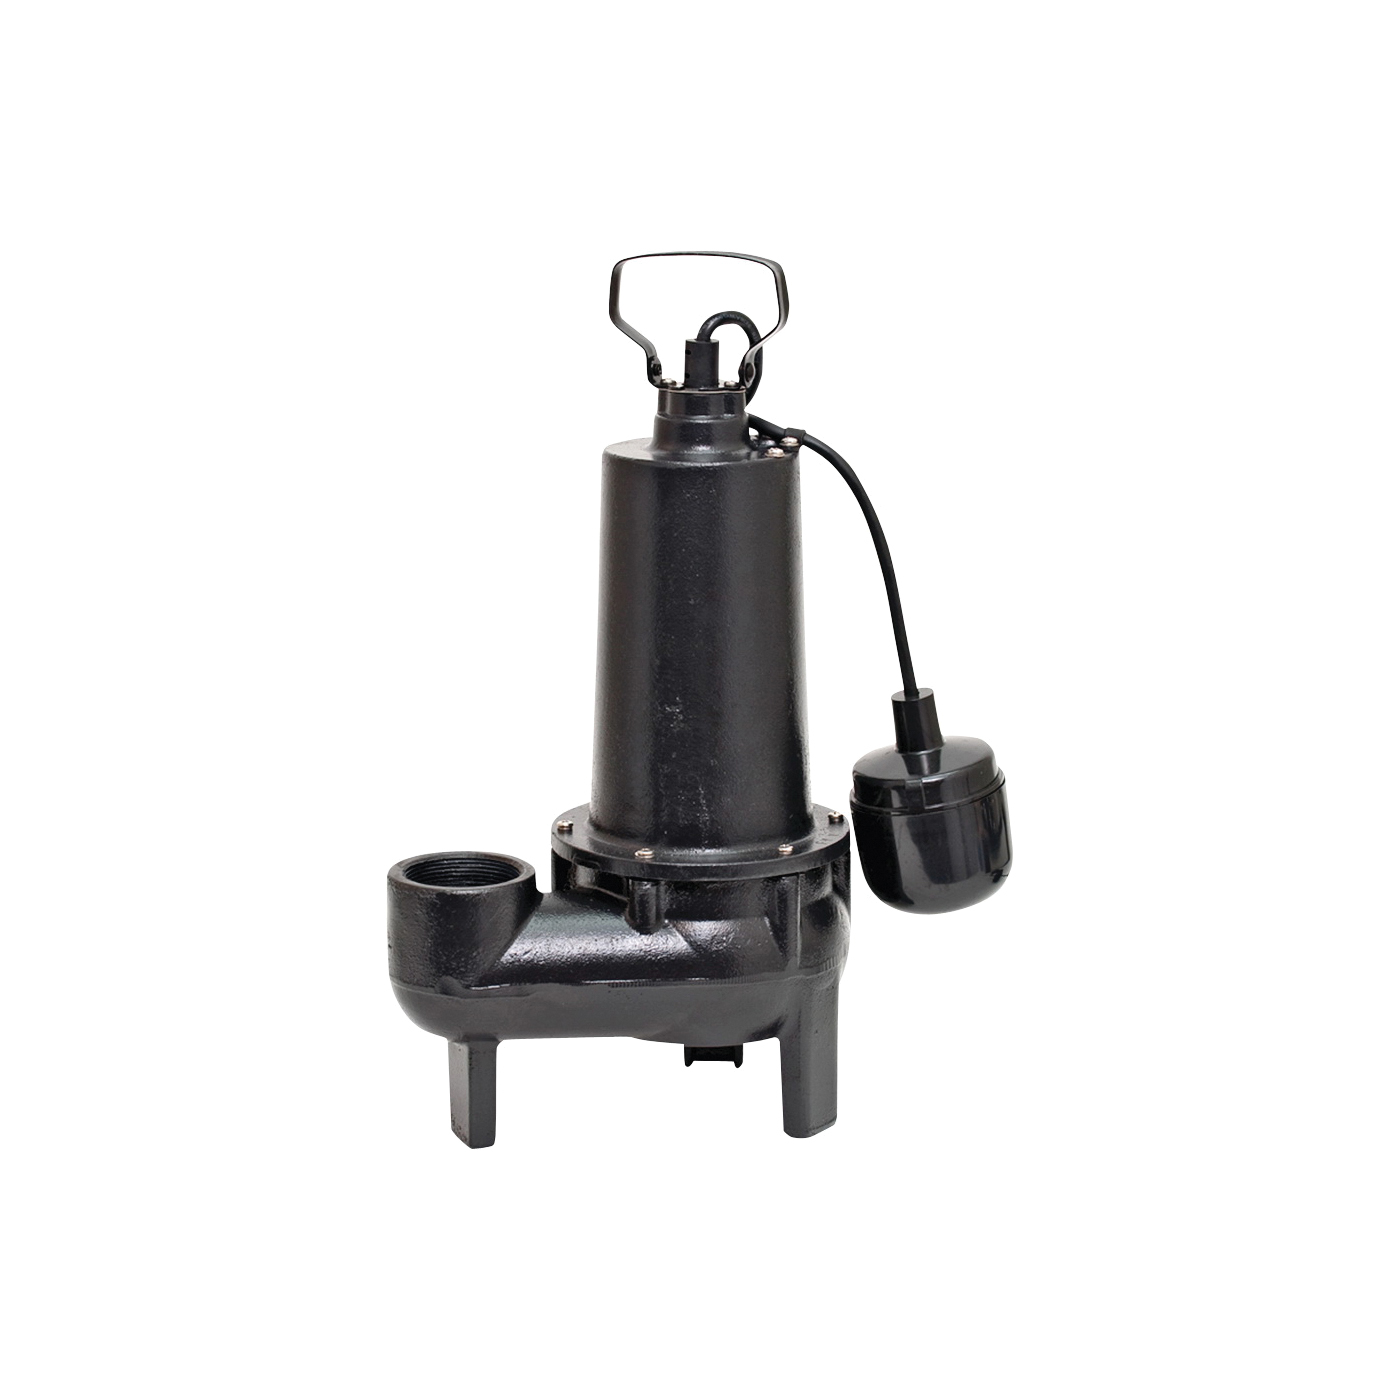 Picture of SUPERIOR PUMP 93501 Sewage Pump, 1-Phase, 7.6 A, 120 V, 0.5 hp, 2 in Outlet, 25 ft Max Head, 80 gpm, Iron